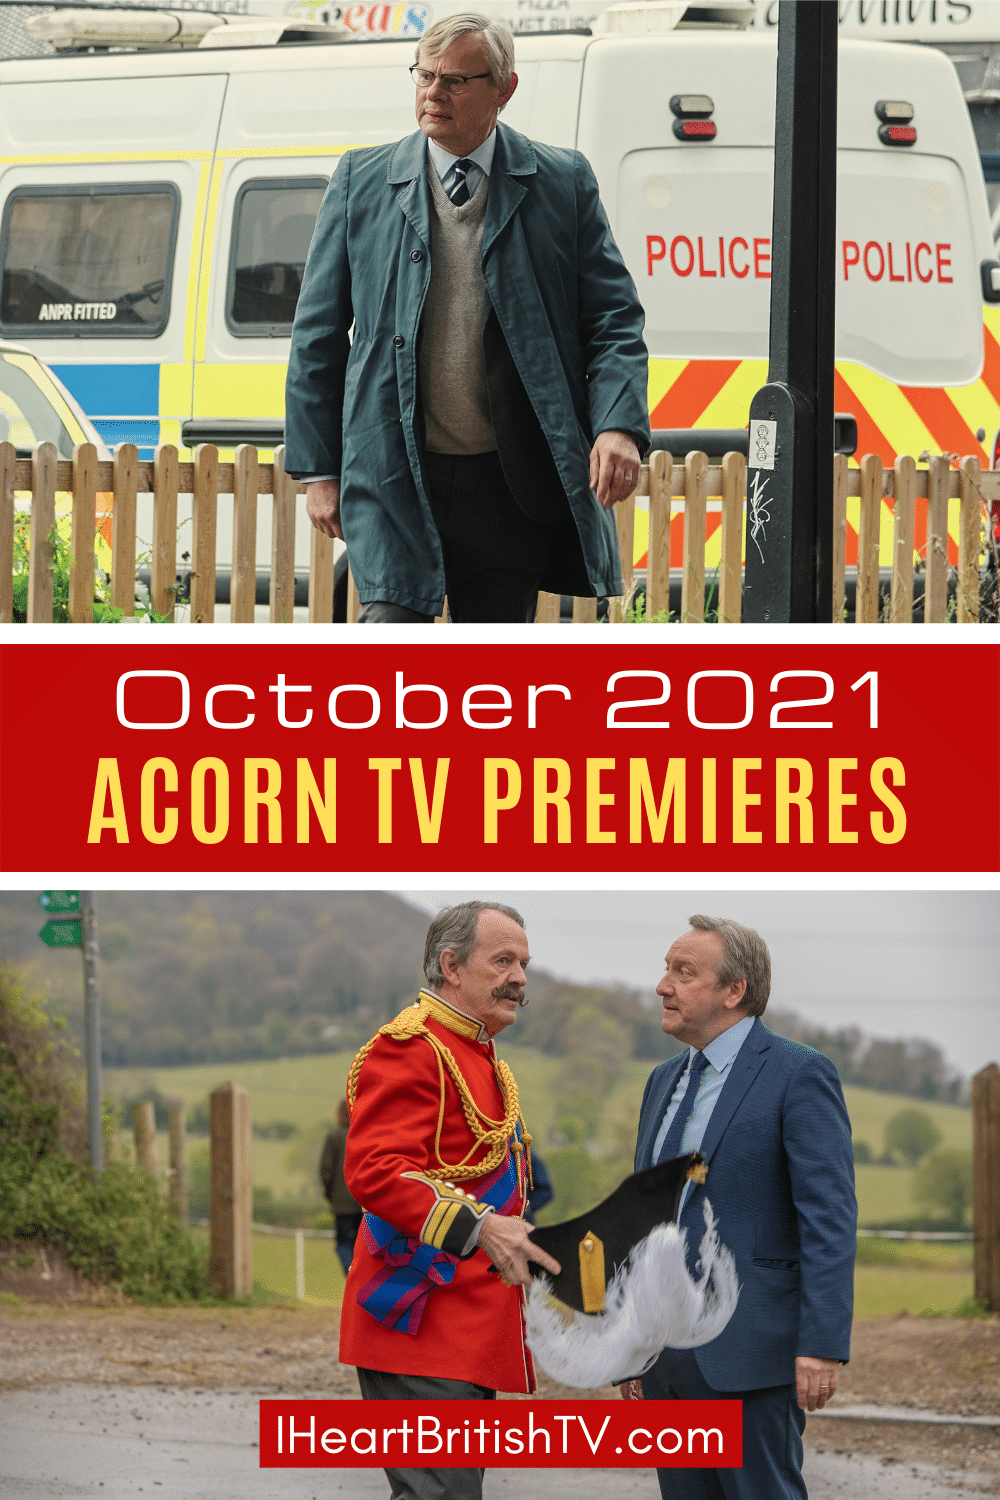 October British TV Premieres: What's New on Acorn TV for October 2021? 9